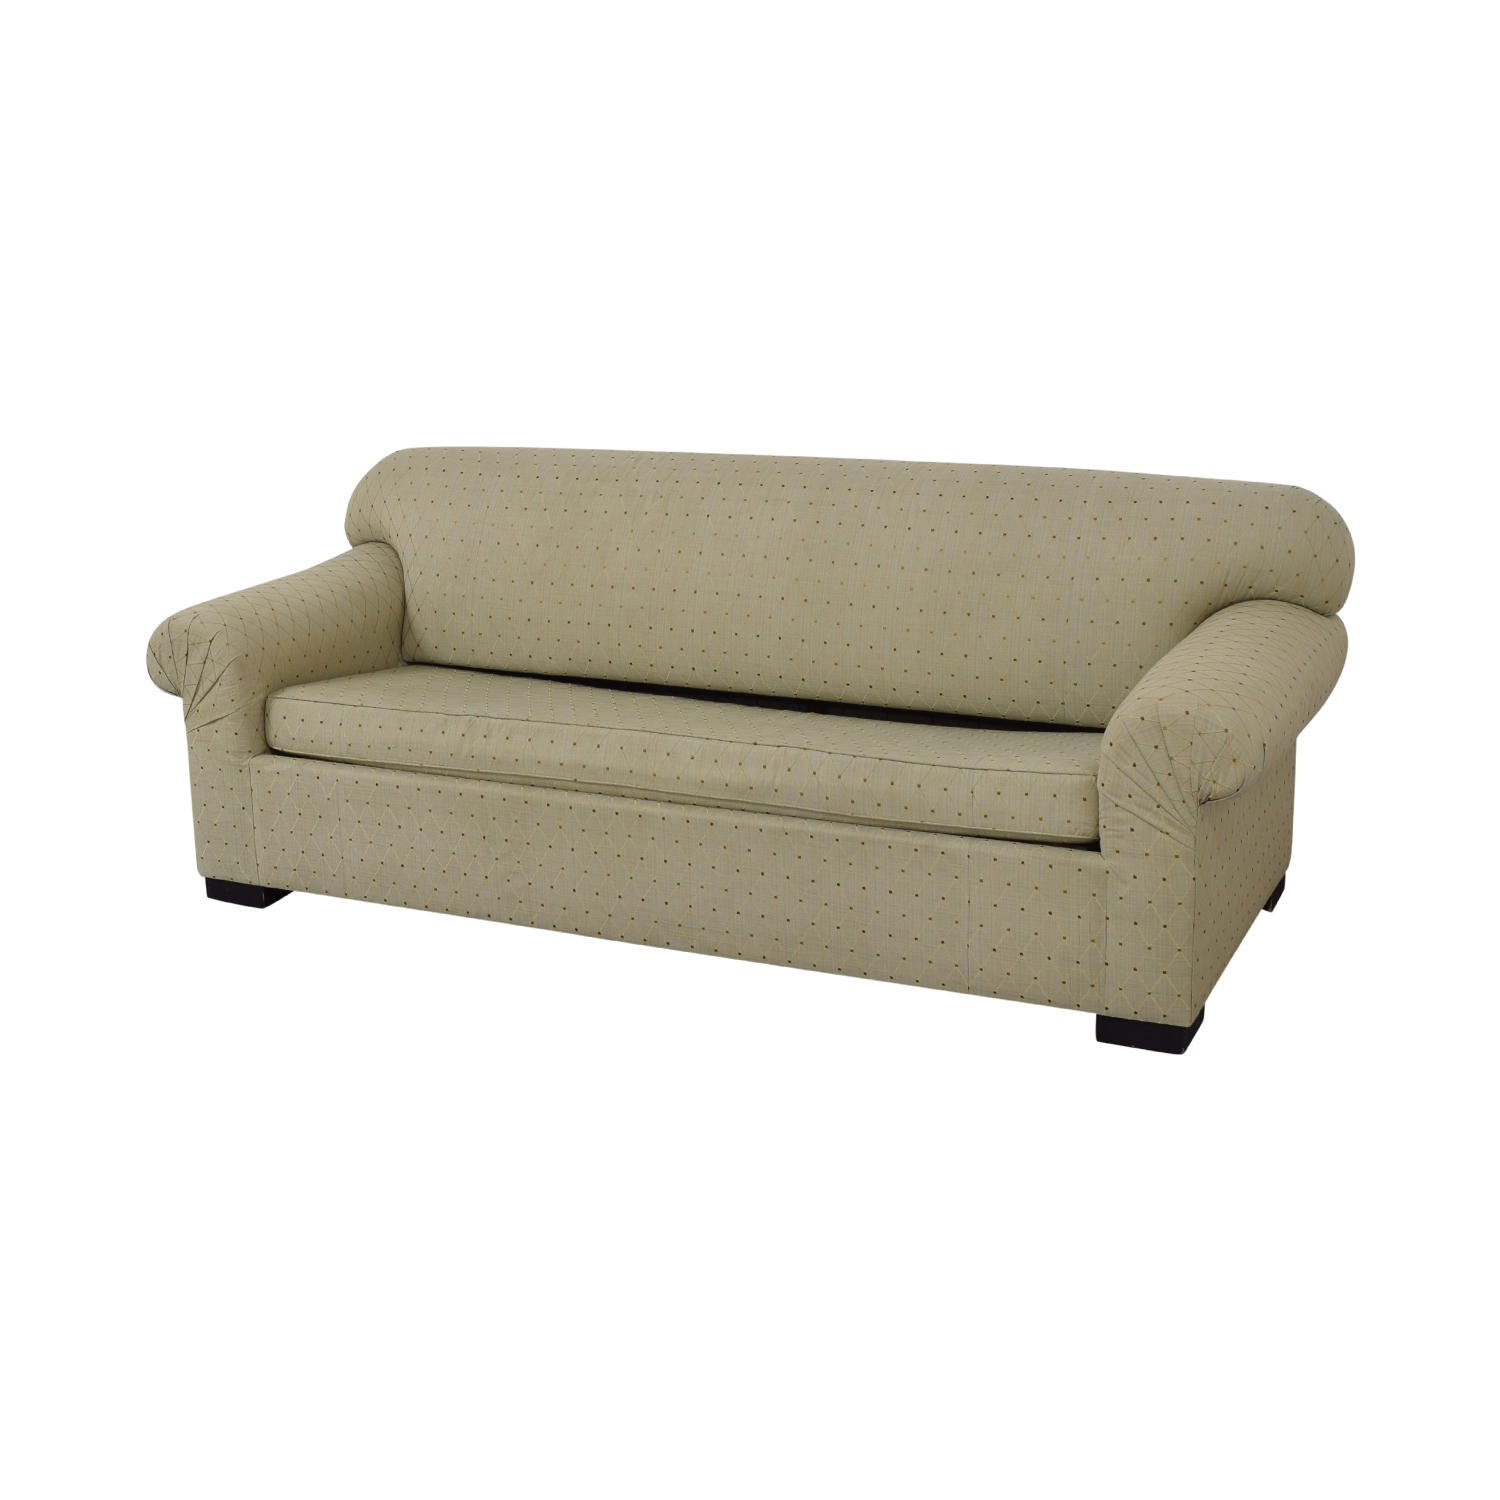 Carlyle Carlyle Queen Pull Out Sofa Bed nj